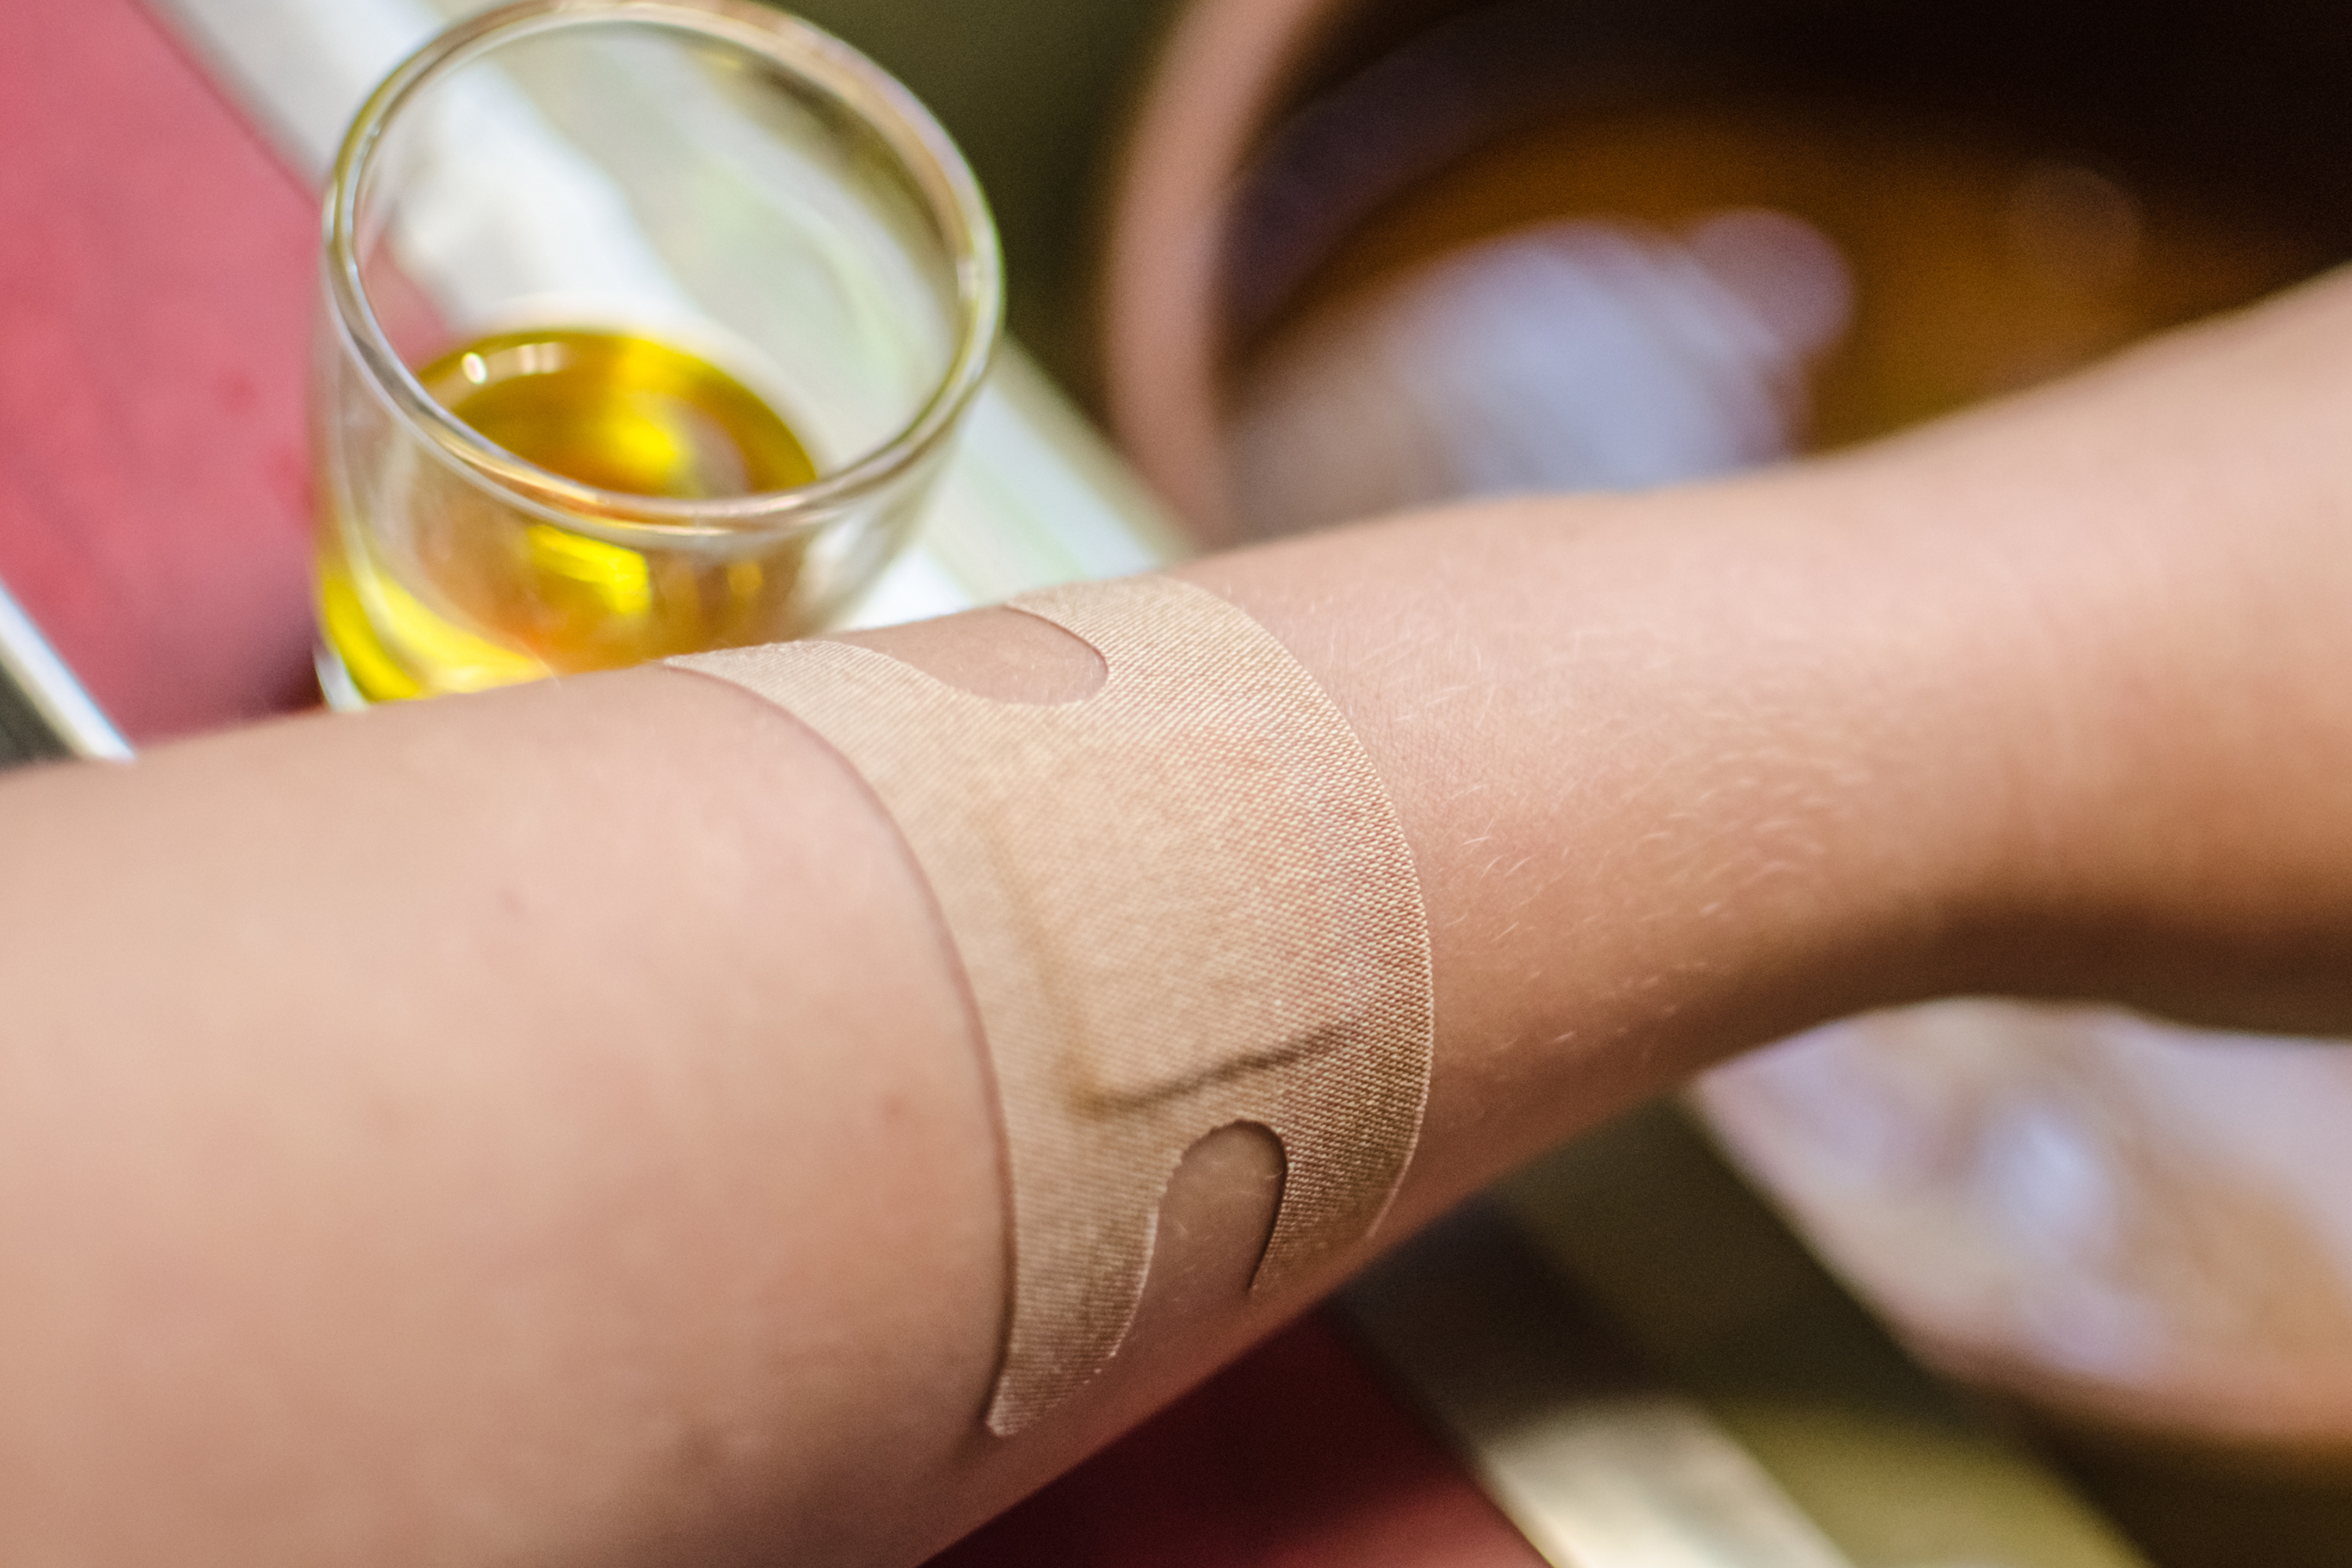 Home Remedy for Hot Wax Burn | Healthfully